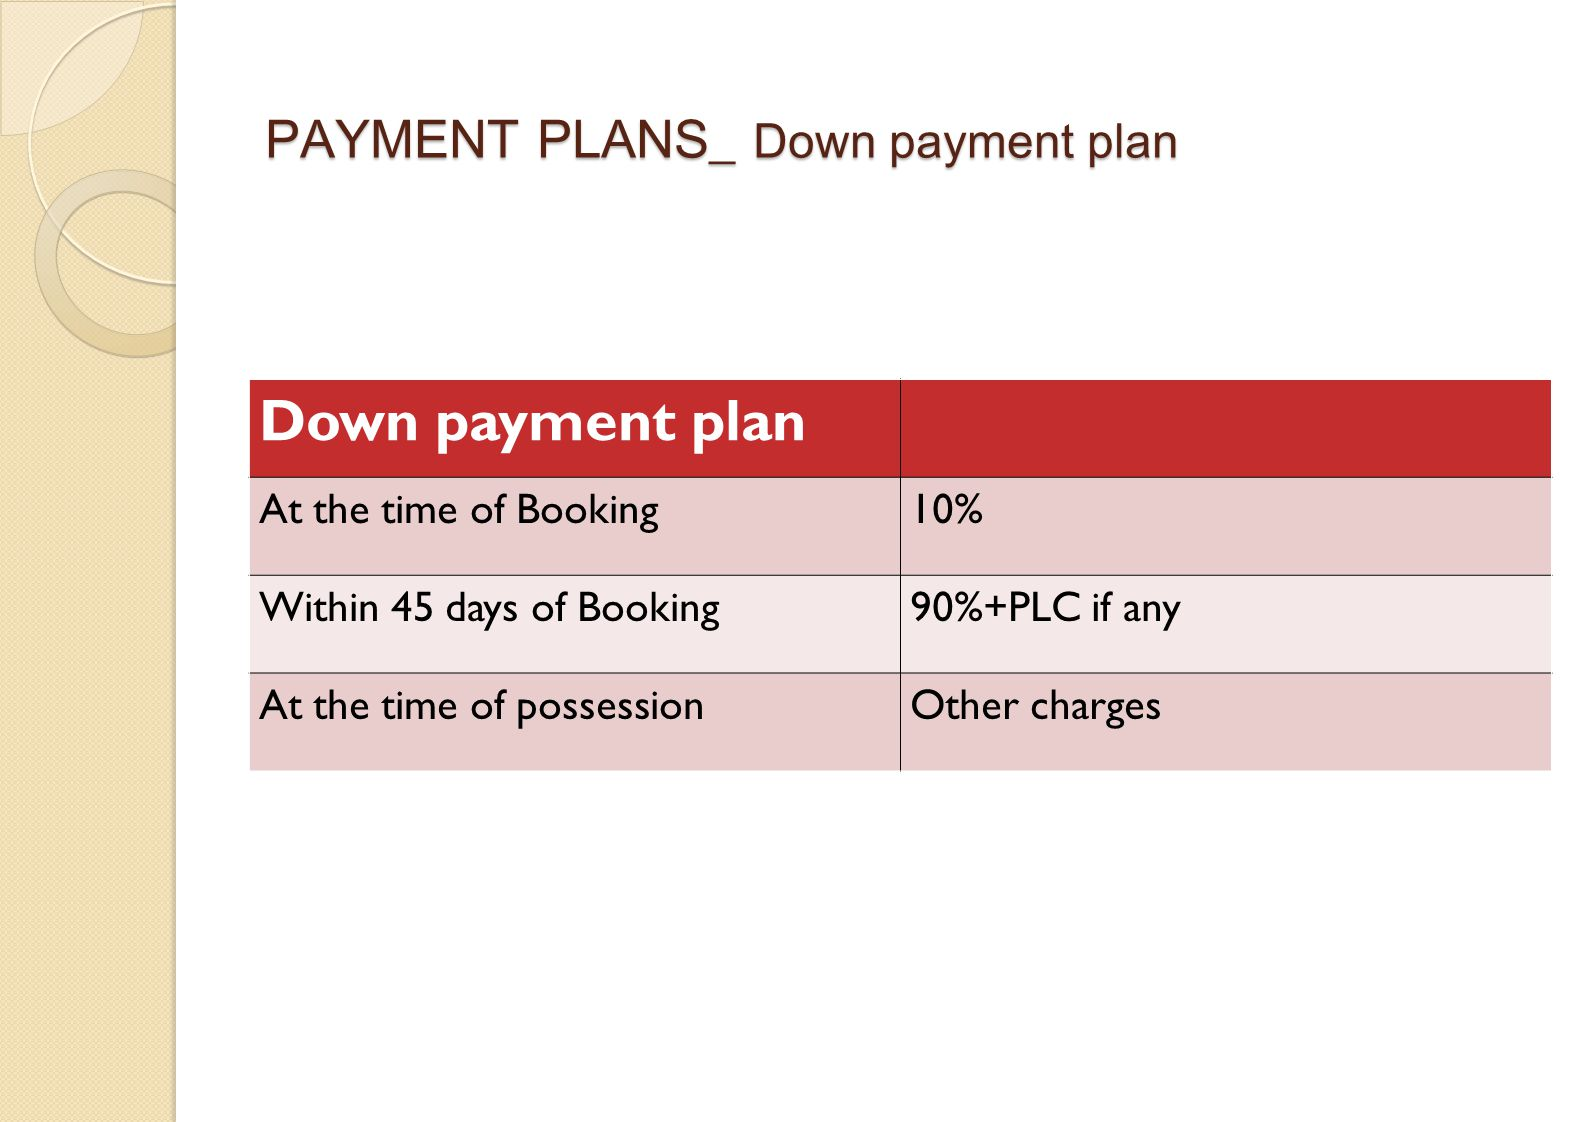 PAYMENT PLANS_ Down payment plan Down payment plan At the time of Booking10% Within 45 days of Booking90%+PLC if any At the time of possessionOther charges